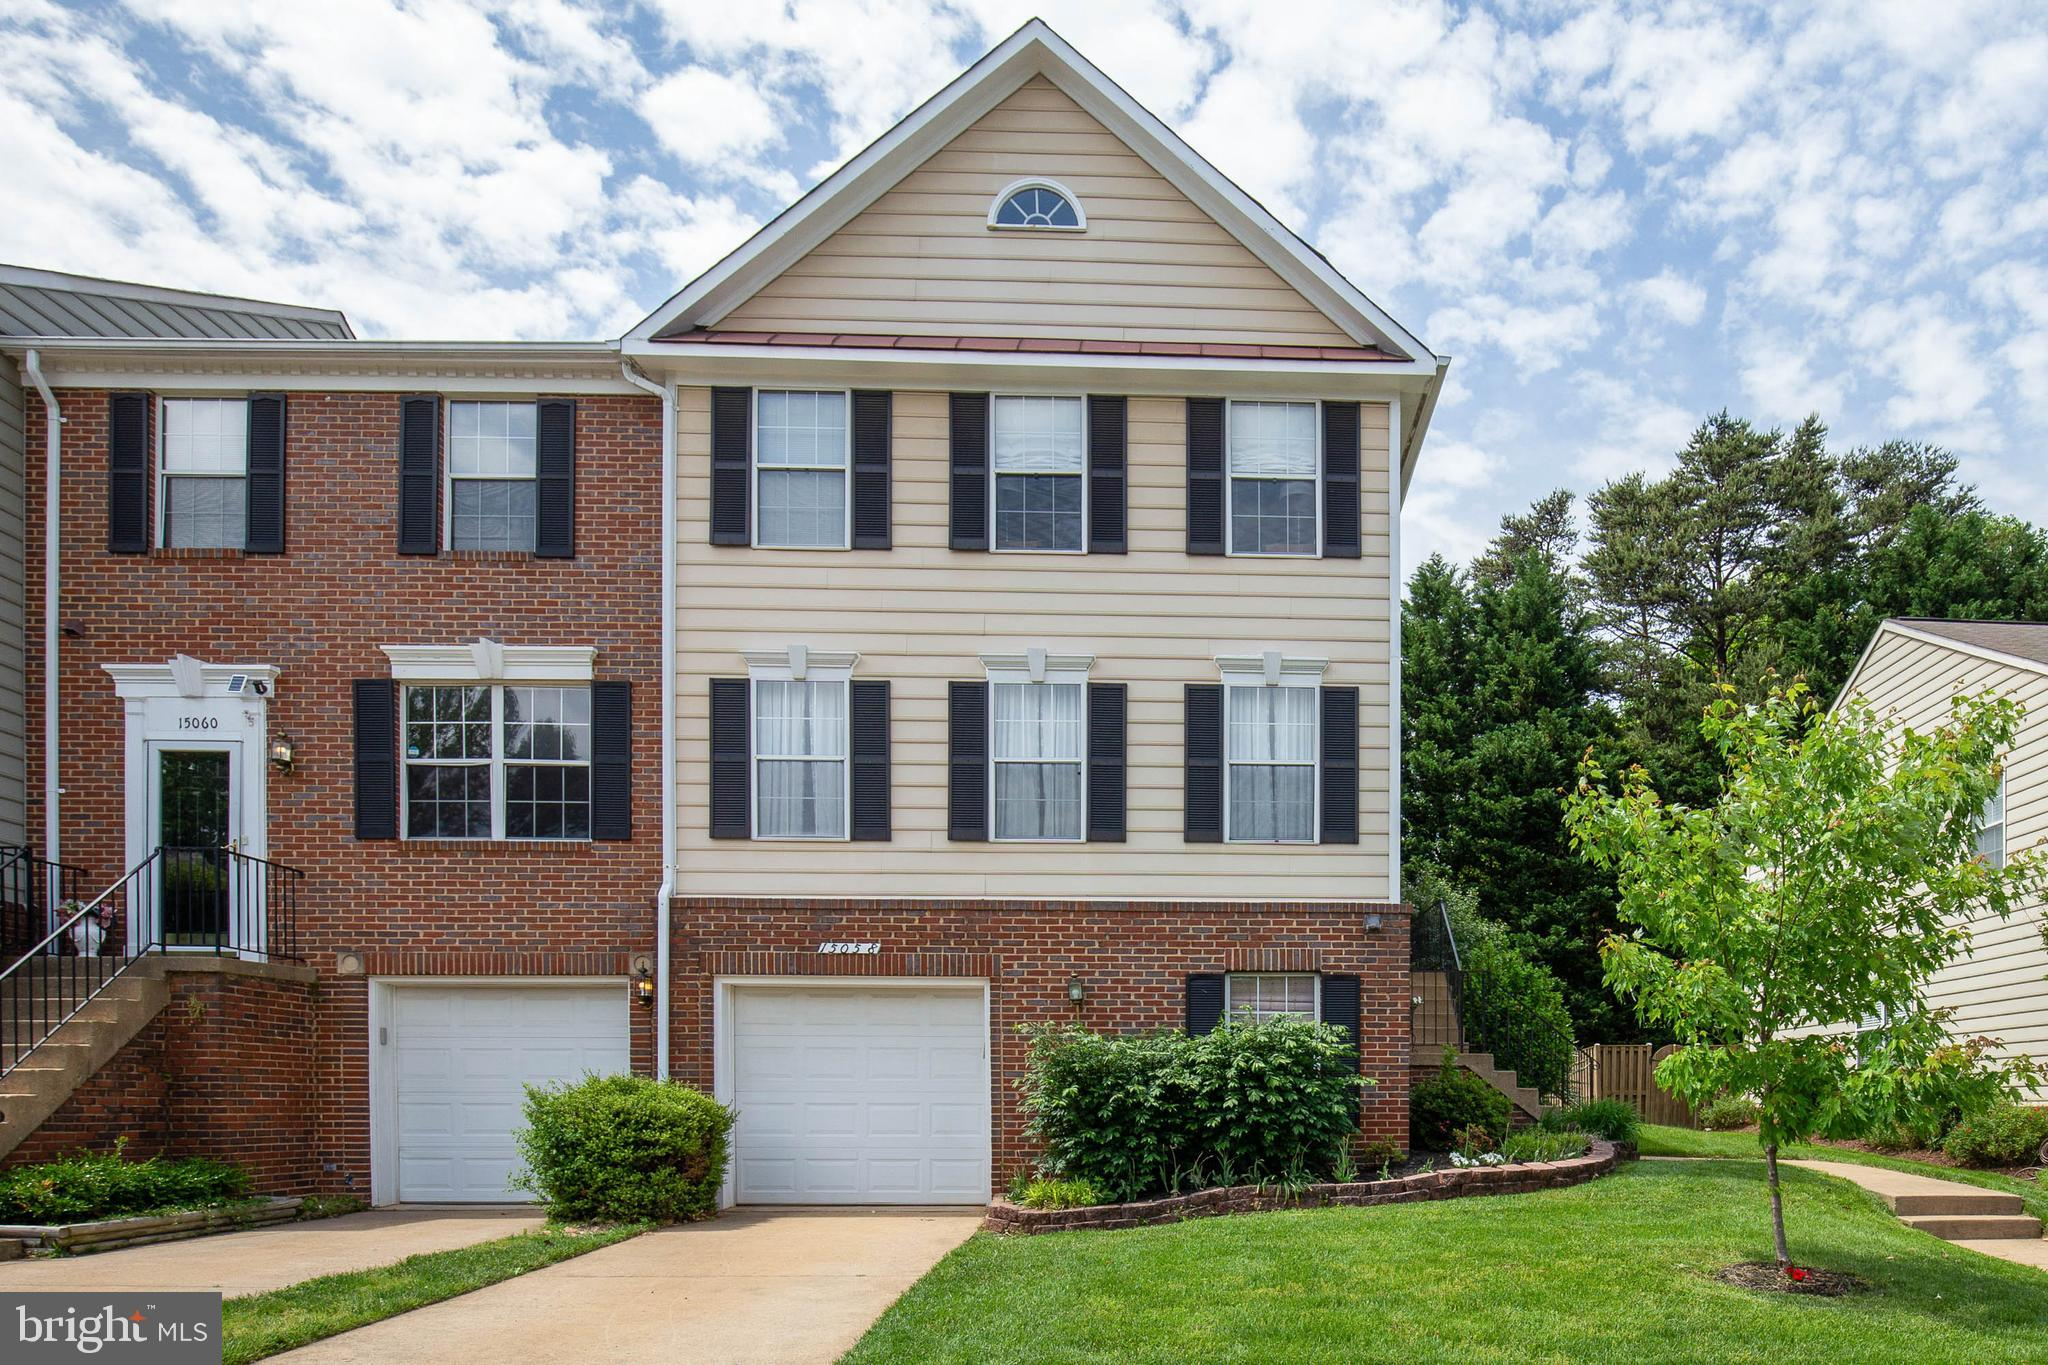 3BR 2/1BA end unit townhome with 1 car garage. Main level hardwood. Updated kitchen has butcher block counters, updated appliances, 5 burner gas stove, pantry. Lower level rec room and laundry, rough-in bath. HVAC 2013. Deck. Privacy fence. Backs to trees.